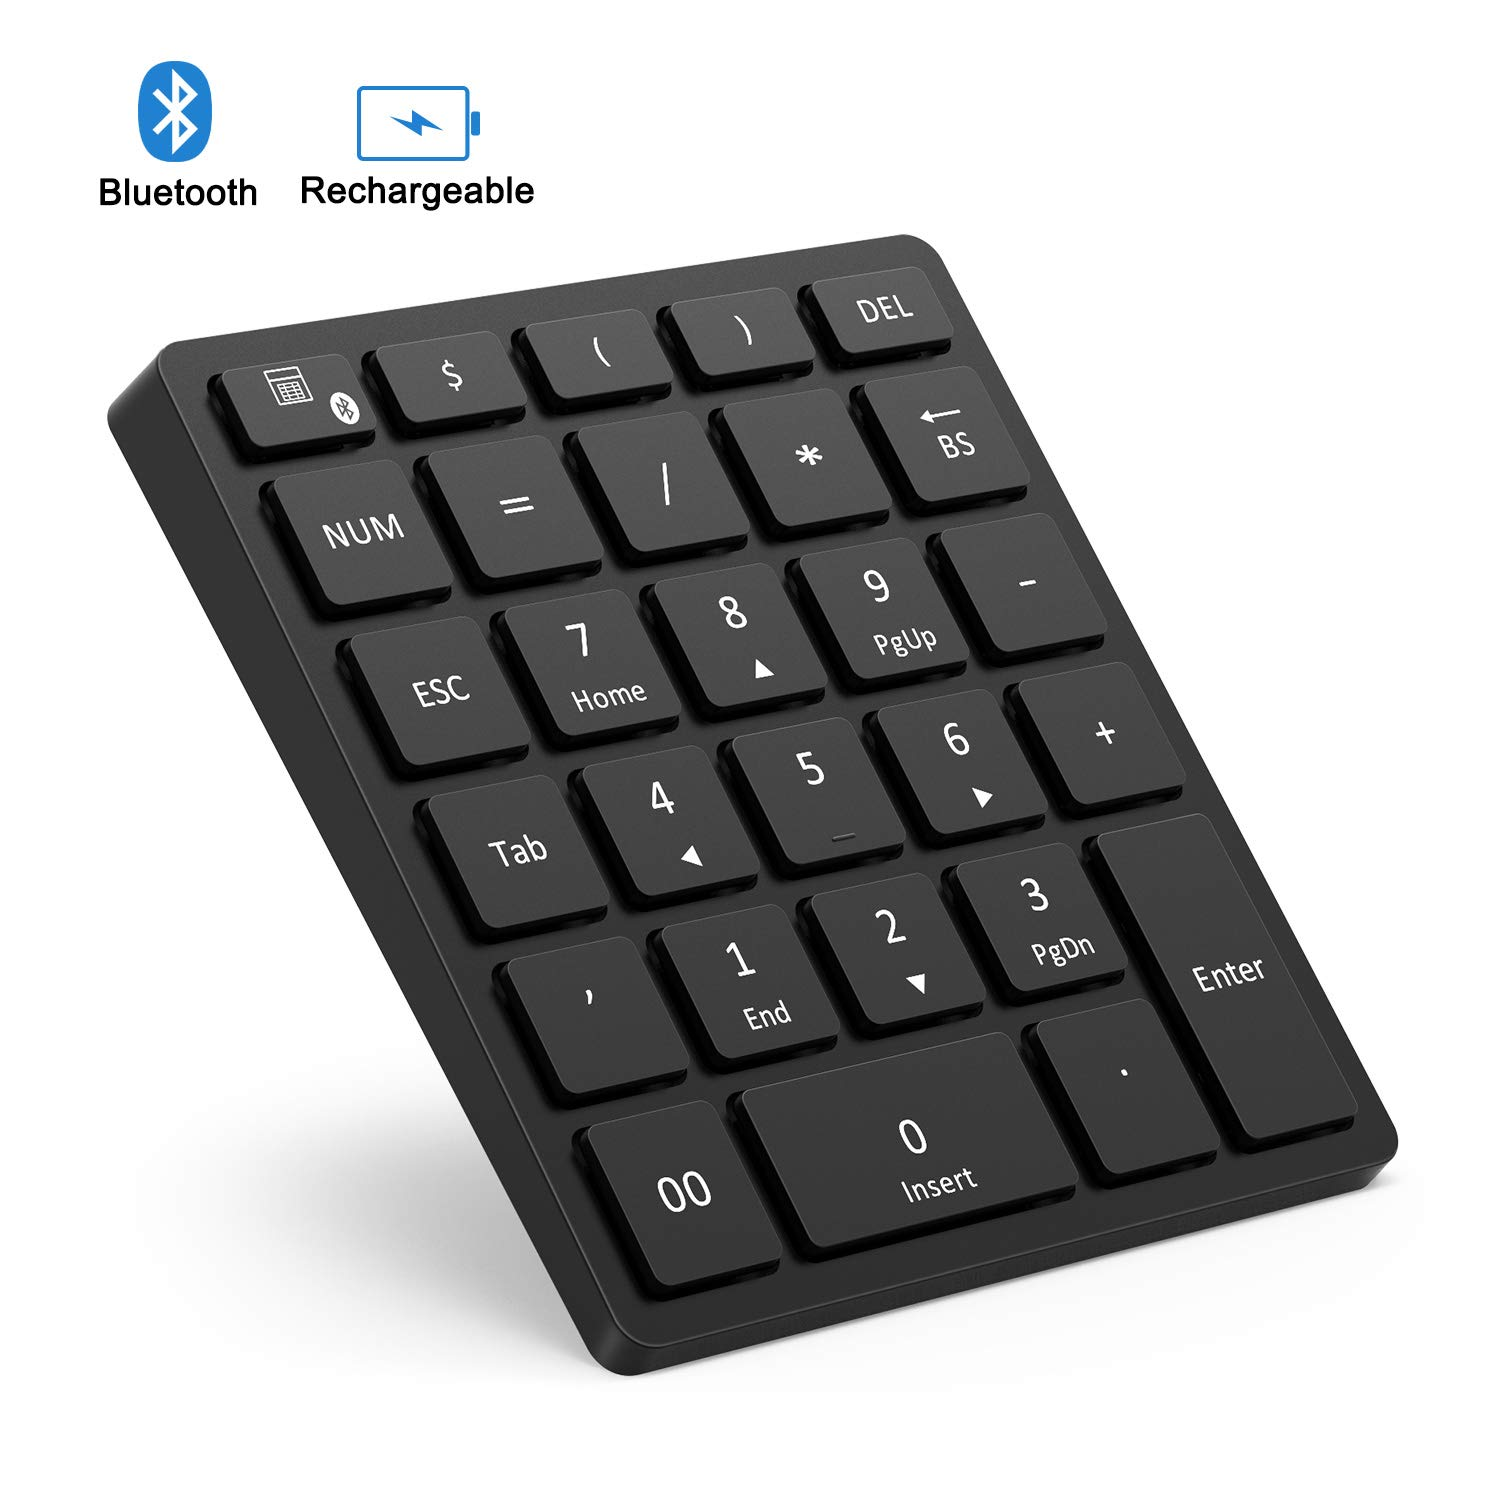 Bluetooth Numeric Keypad Rechargeable, Jelly Comb Portable Wireless Bluetooth 28-Key Number Pad with Multiple Shortcuts for Tablet, Laptop, Notebook, PC, Desktop and More (Black)